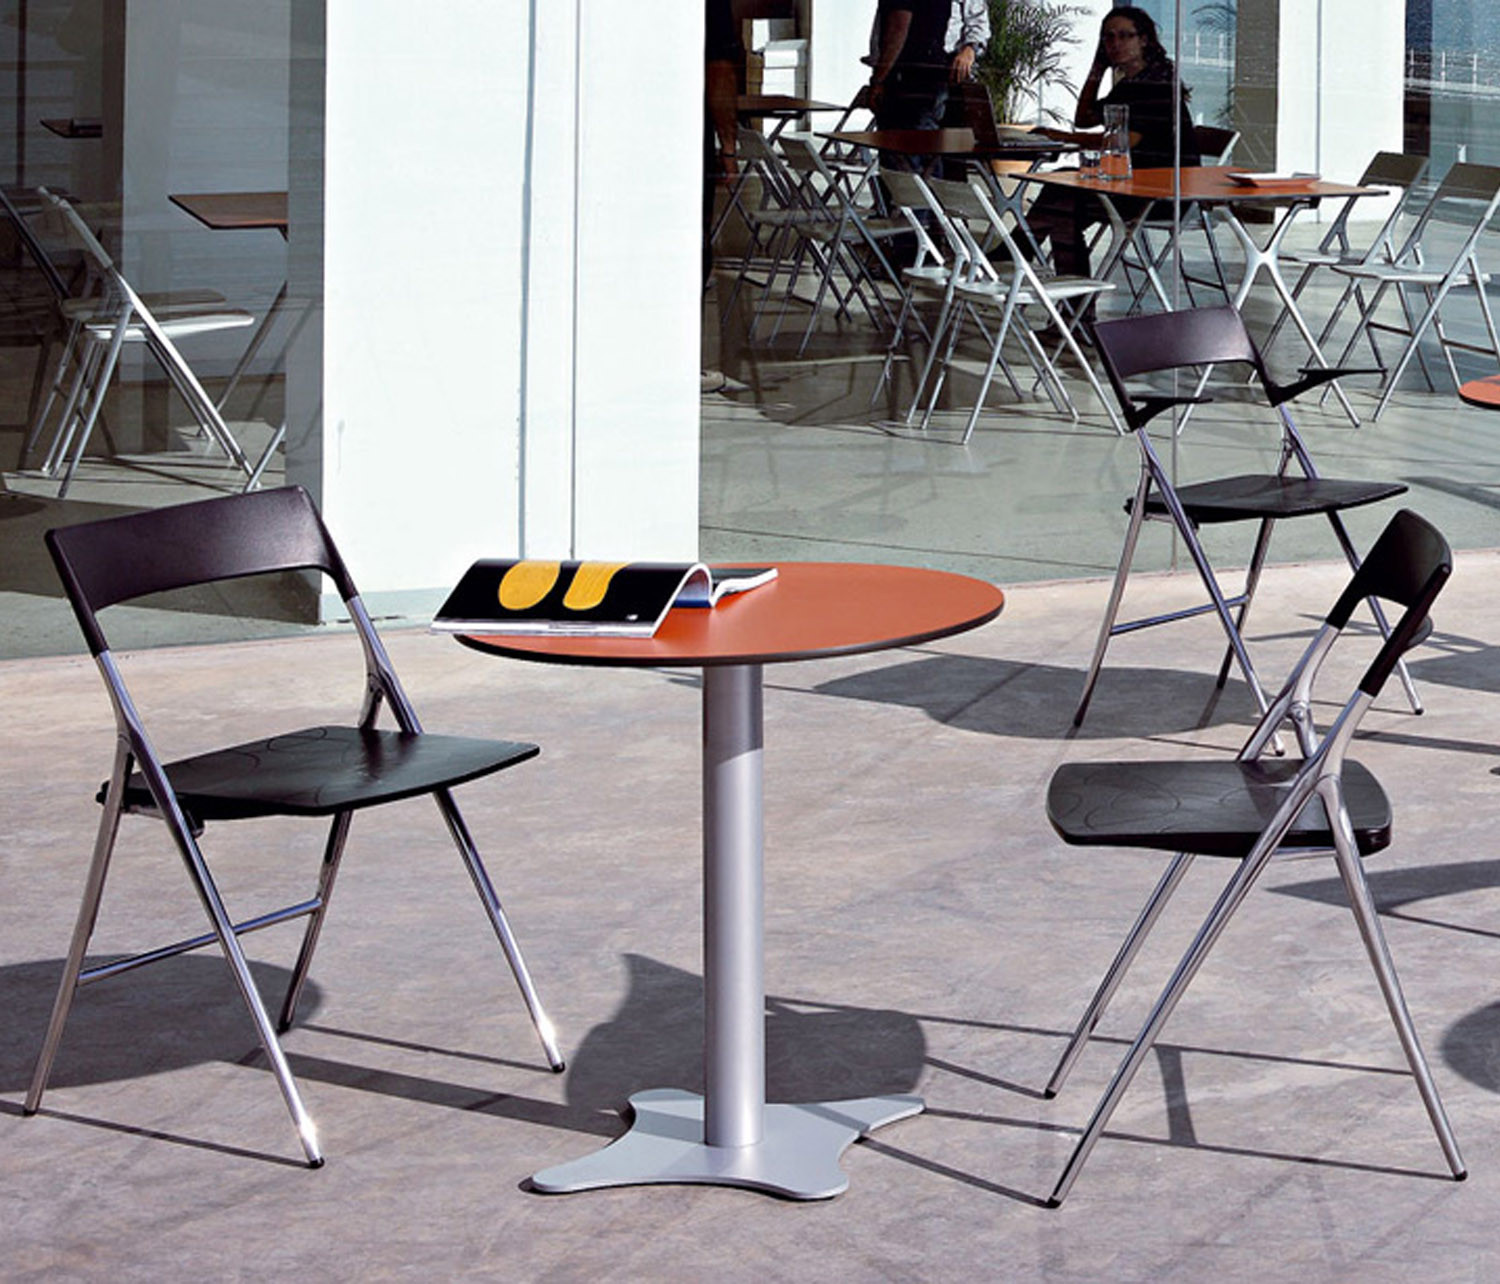 Plek Cafe Chairs by Actiu